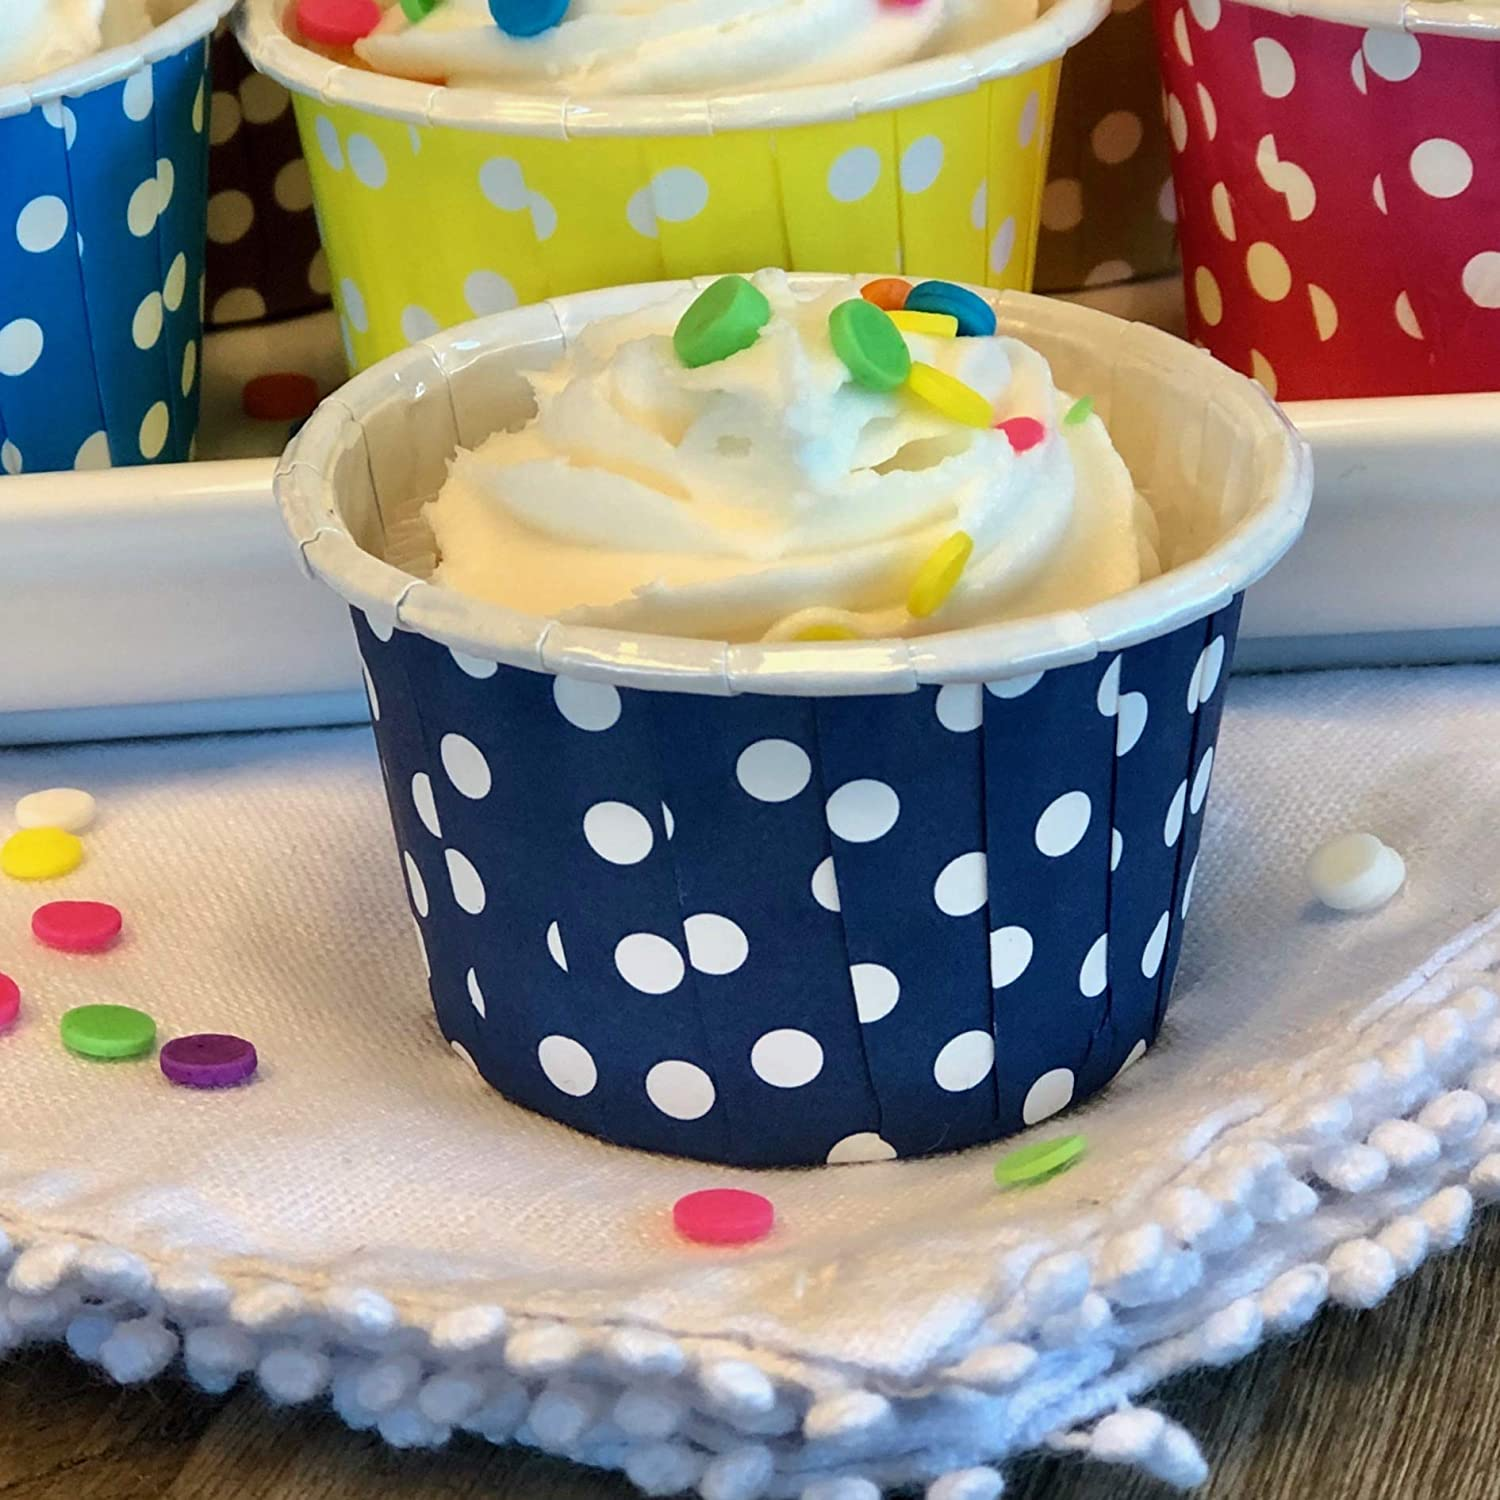 48 Pack Candy Nut Mini Baking Cups 2 x 1.5 Inches Navy Blue and Silver